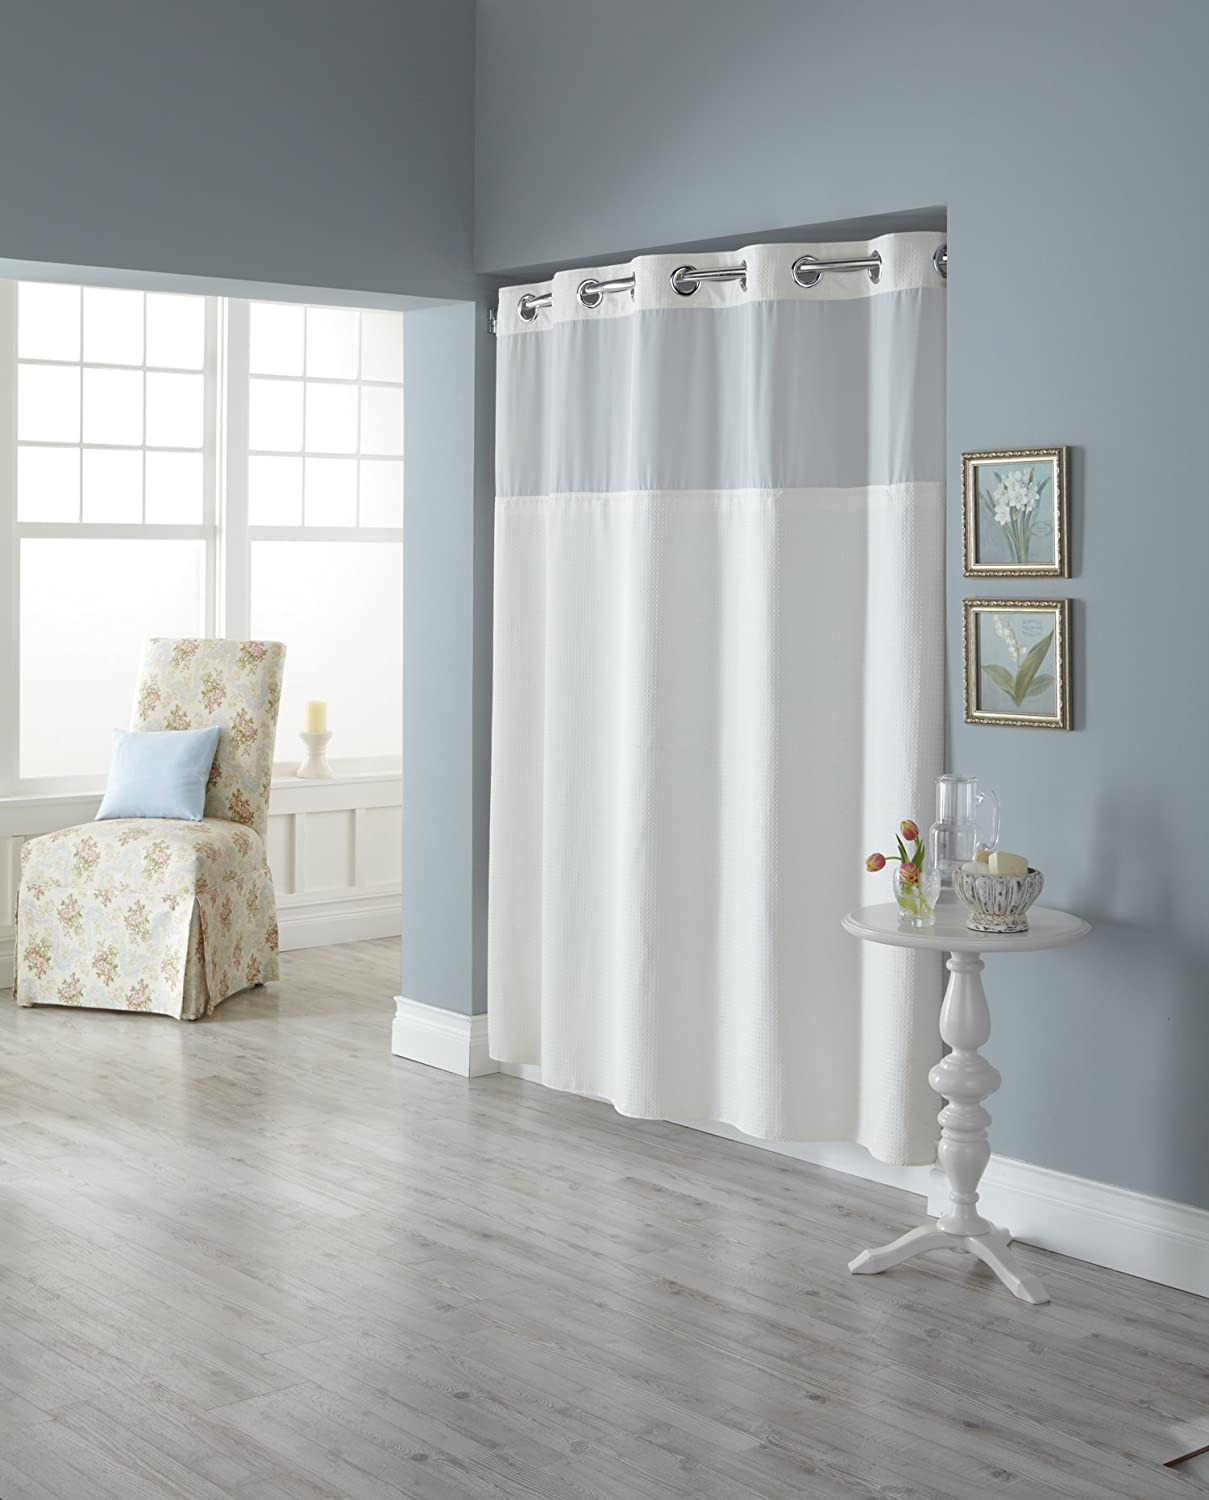 Amazon Hookless RBH82MY417 Fabric Shower Curtain With Built In Liner